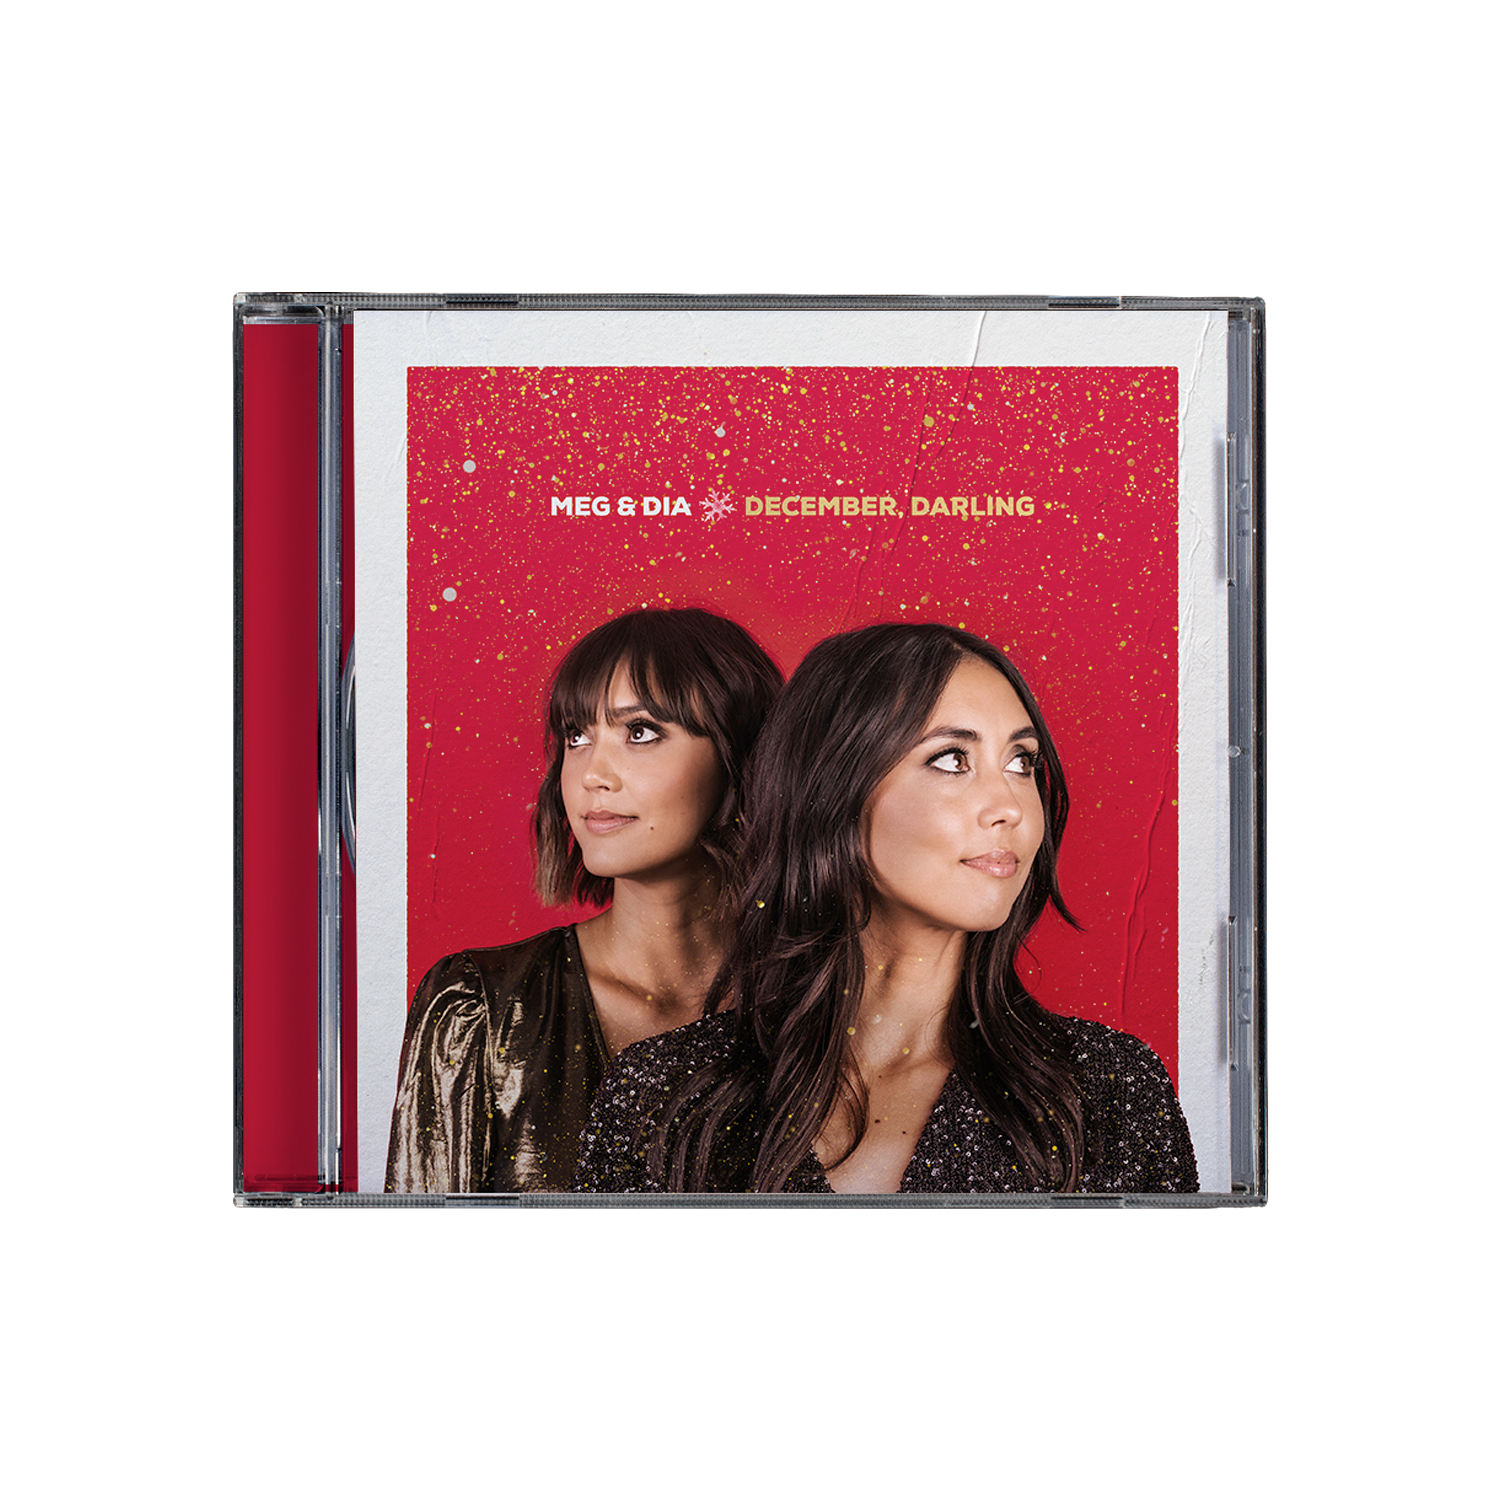 Meg & Dia 'December, Darling' CD